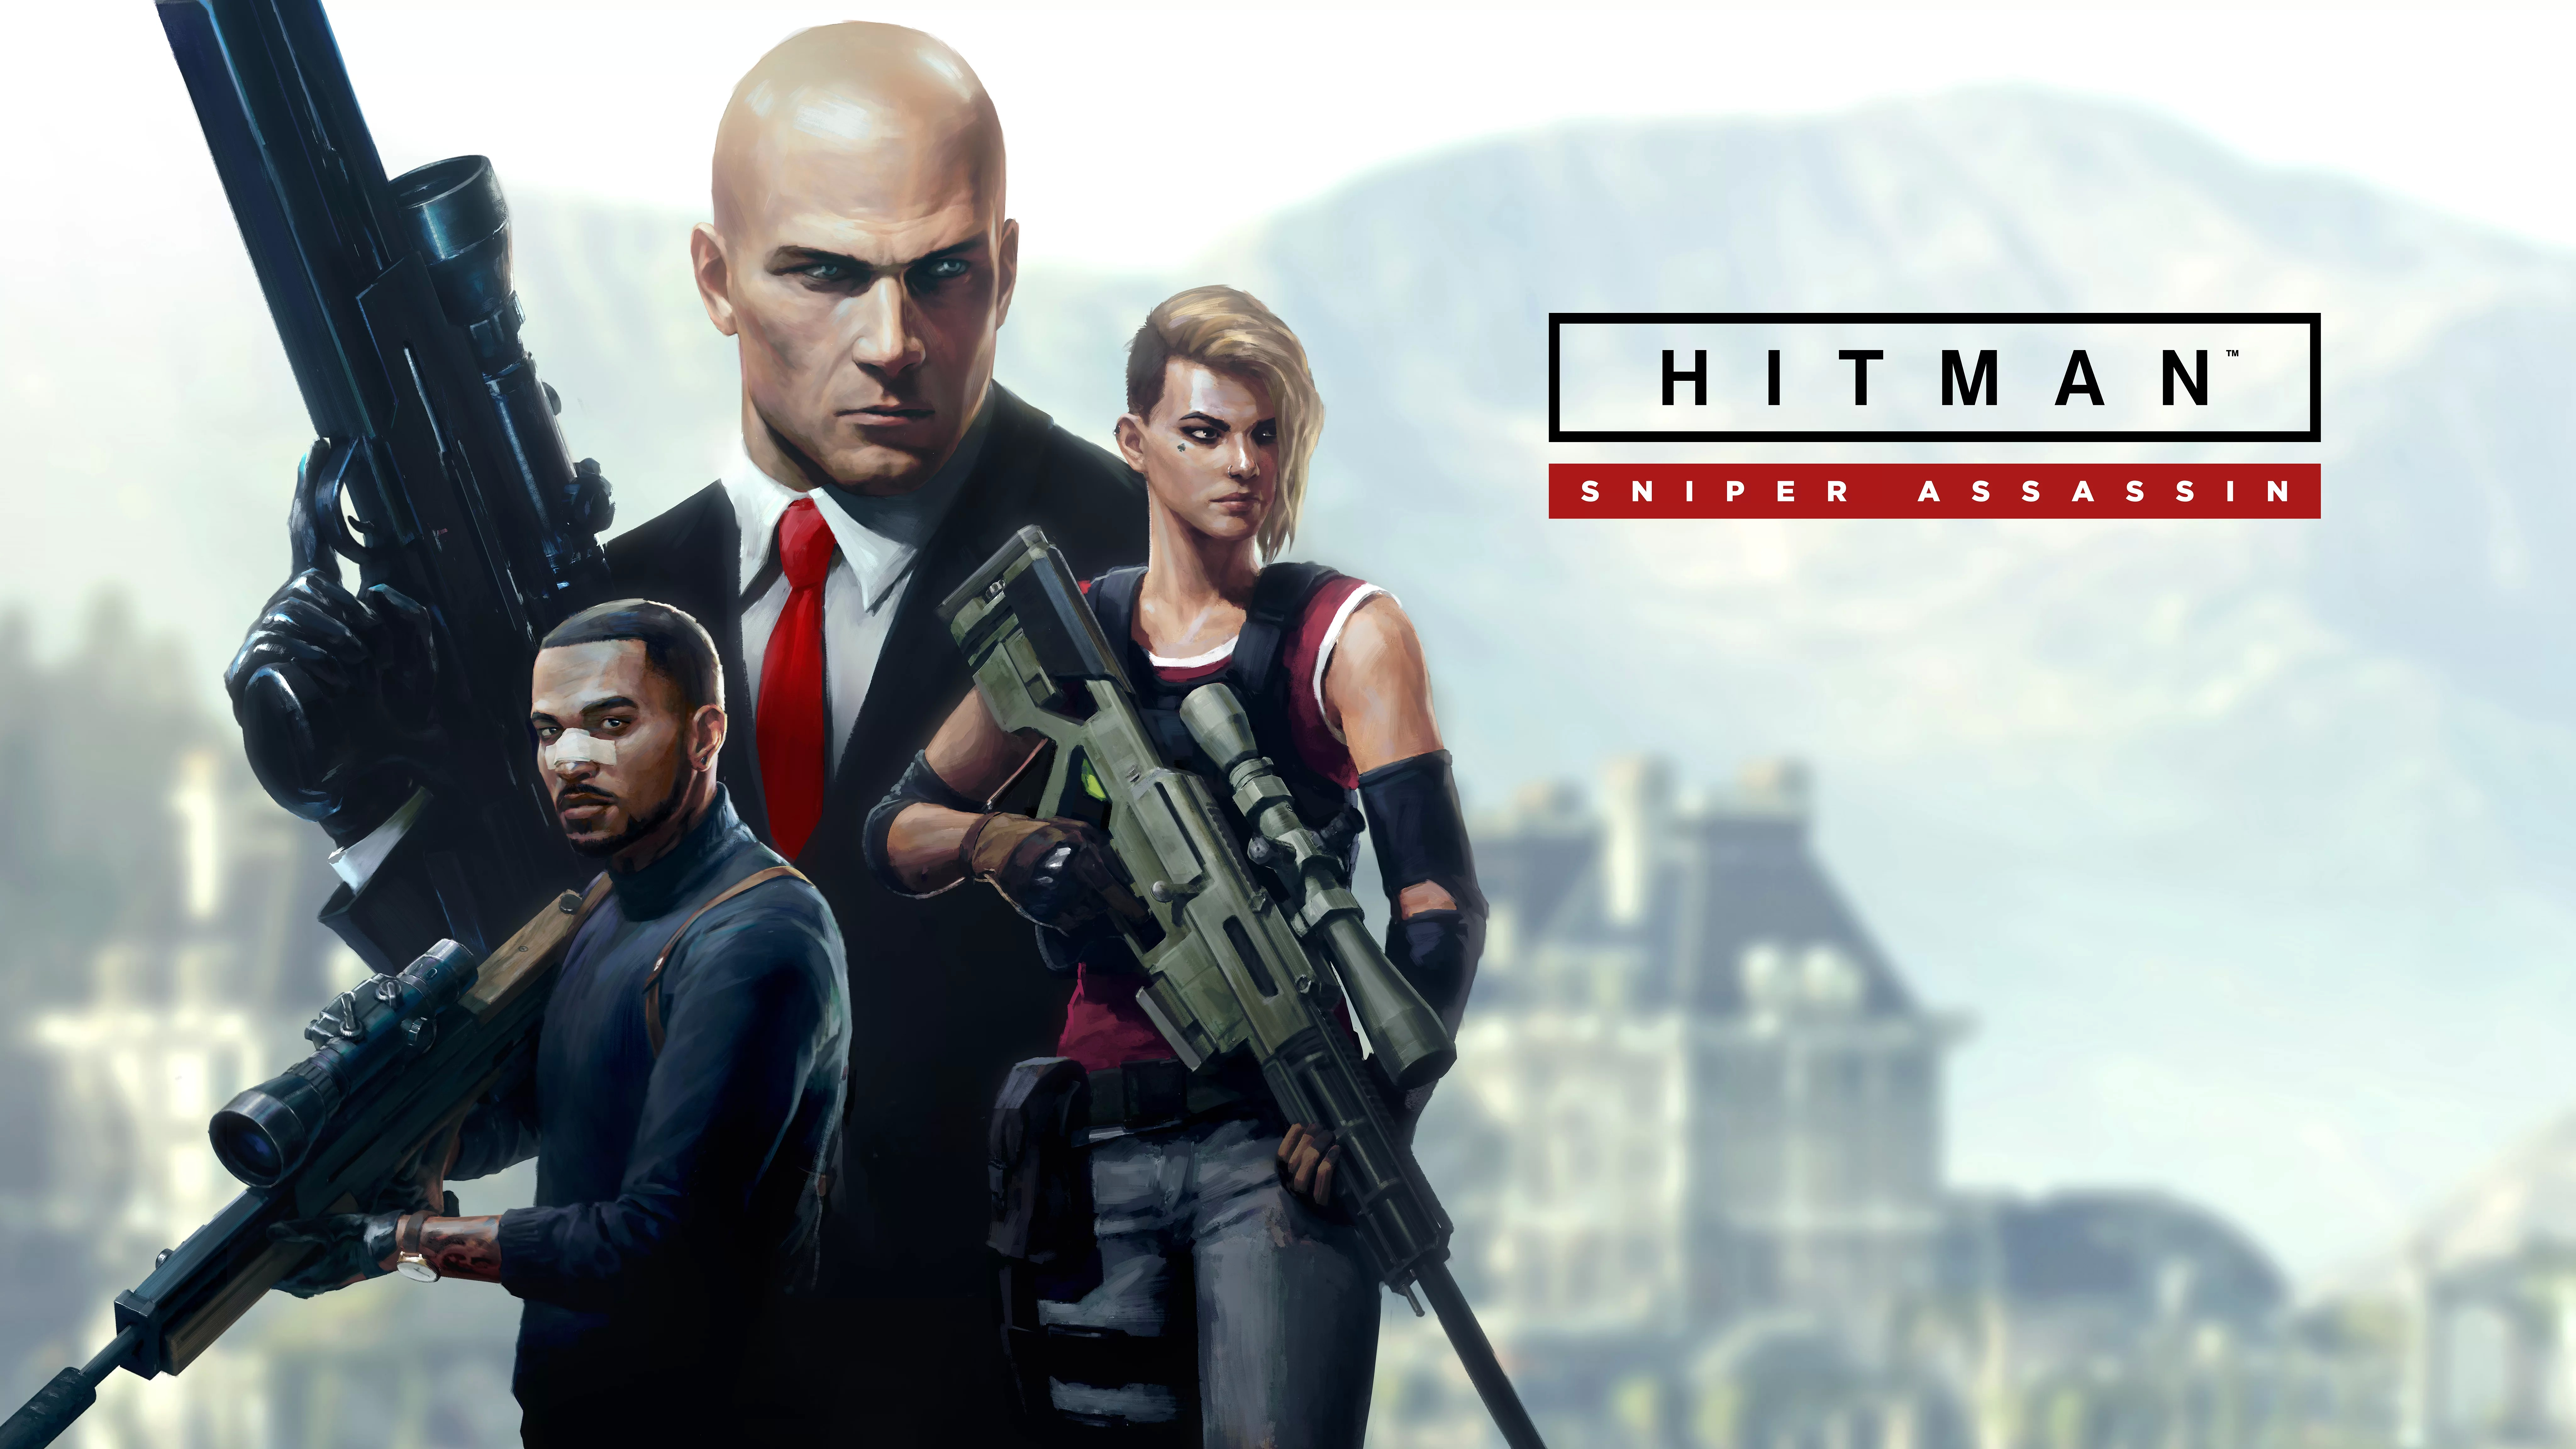 Hitman 2 Sniper Assassin 4k 8k Wallpapers Hd Wallpapers